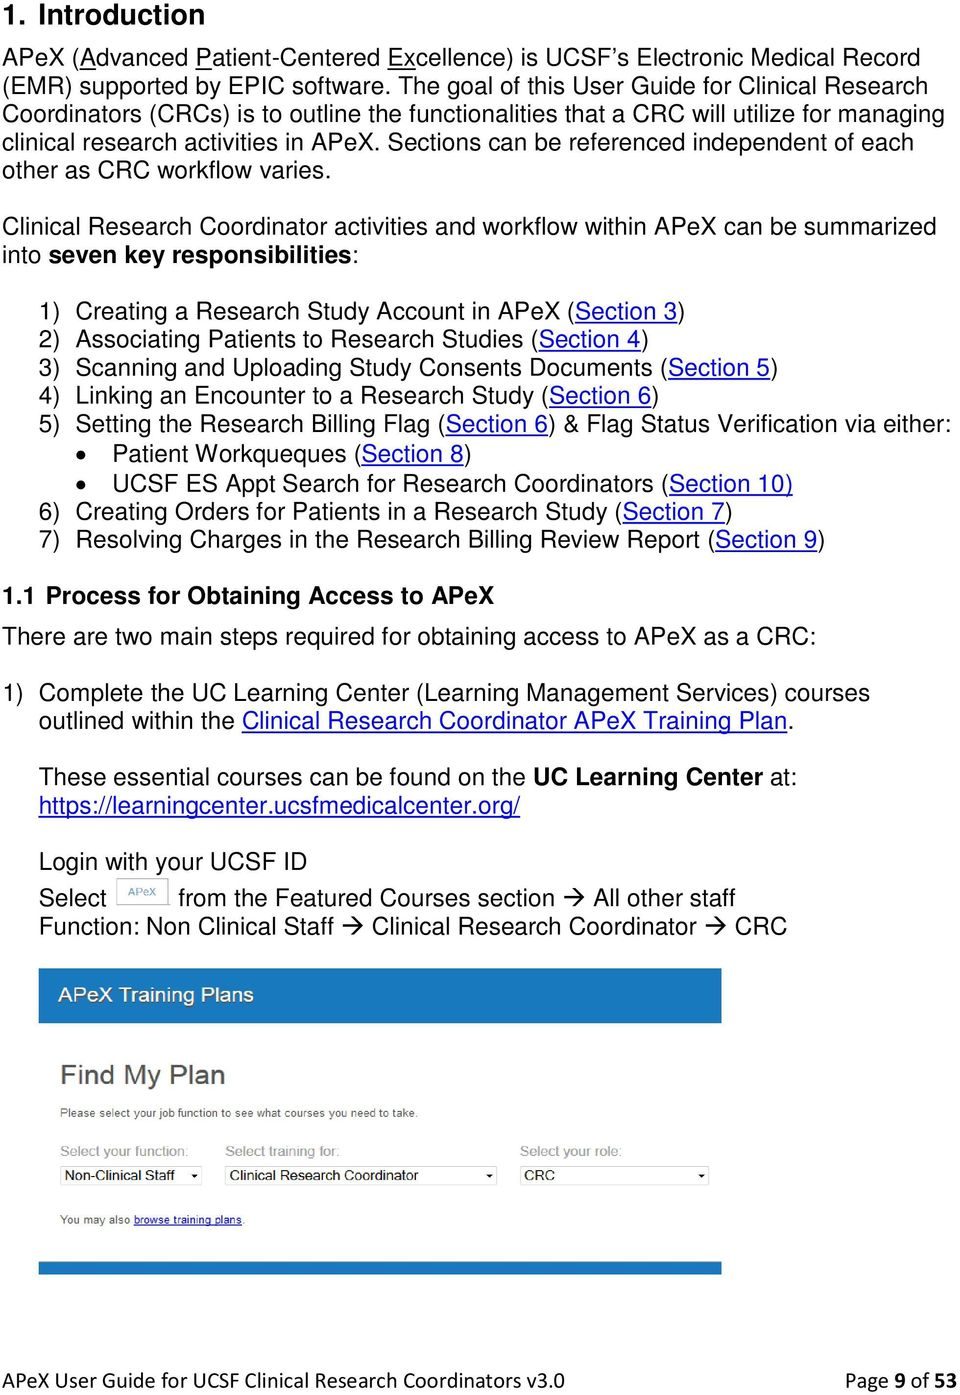 User Guide  For UCSF Clinical Research Coordinators (CRCs